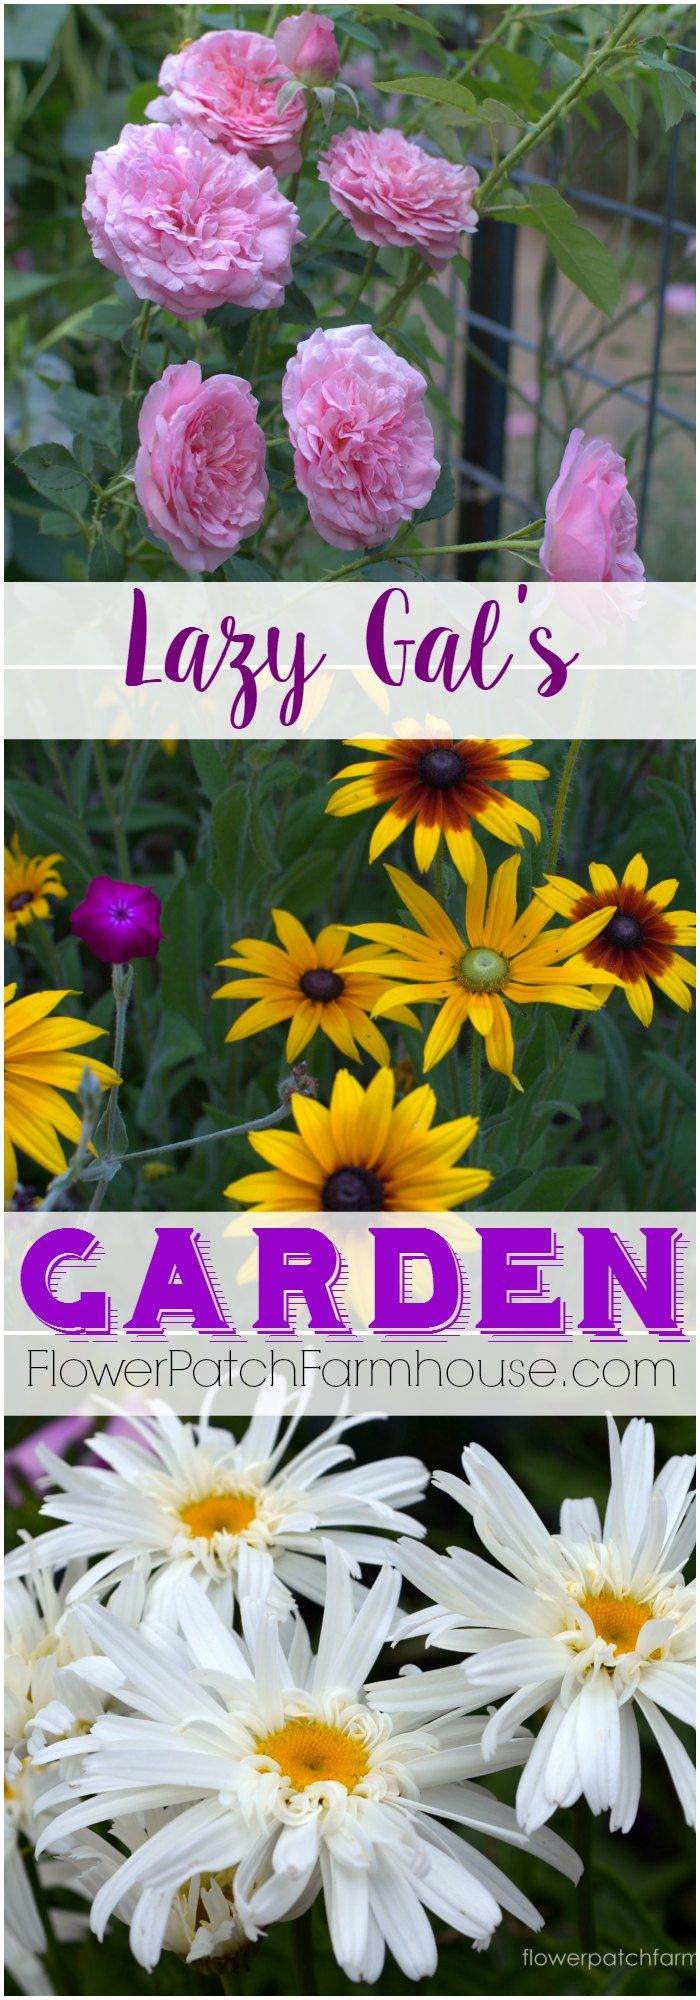 Lazy Gal's Garden Guide, how to get a fabulous garden with less work and time.  Fall is the perfect time to get started on the easy garden. Come see how to have a fabulous Spring garden. #fallgarden #gardening #cottagegarden